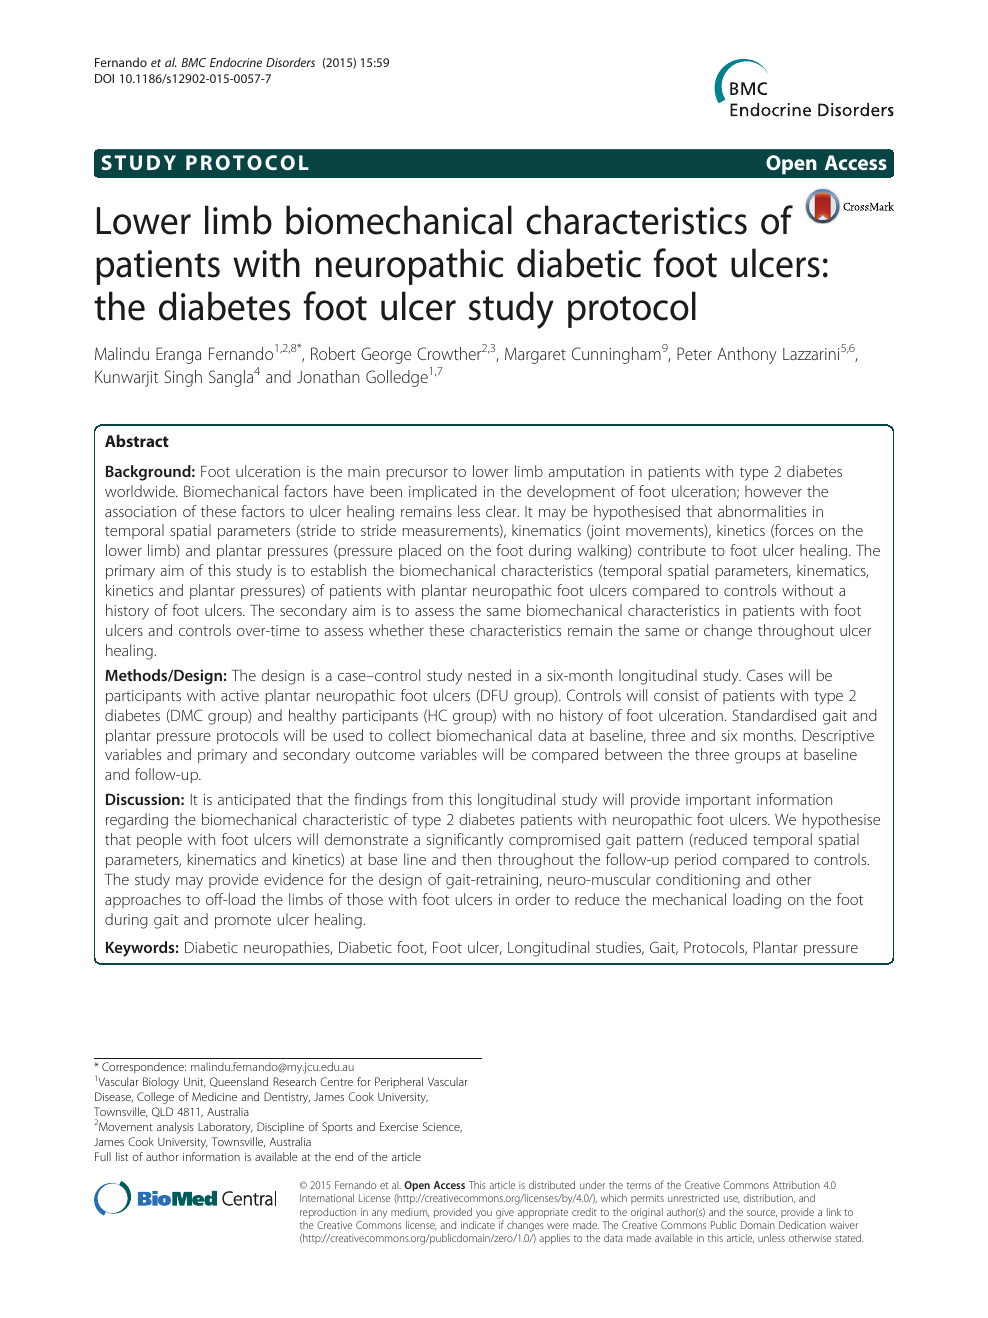 Lower limb biomechanical characteristics of patients with